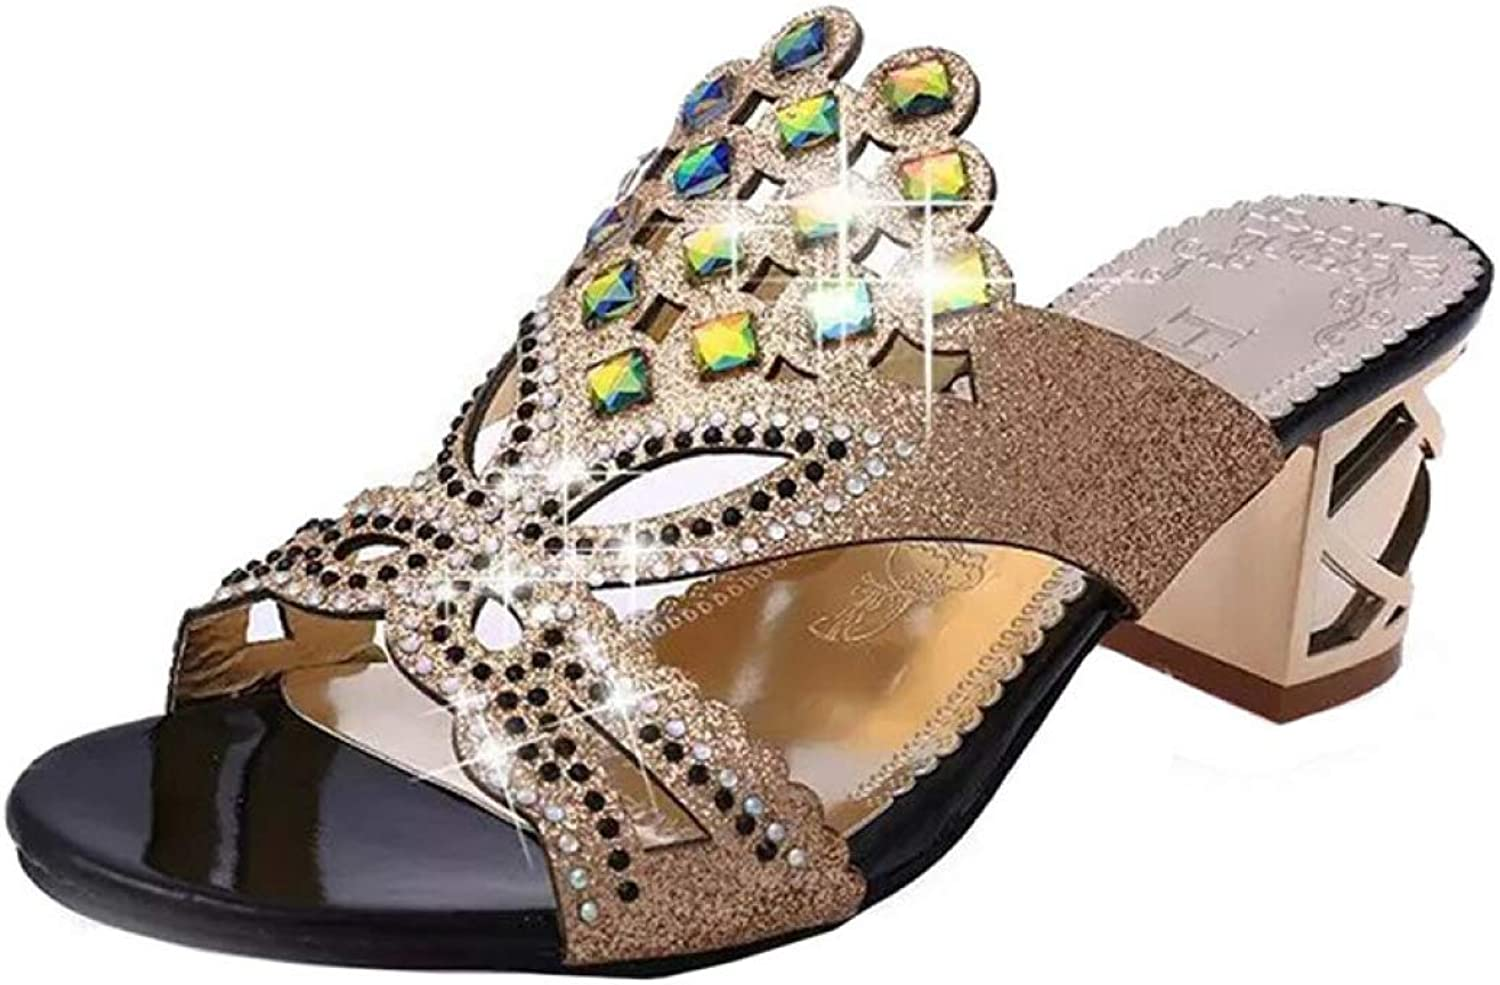 T-JULY Sandals for Women Beach Rhinestone Hallow Out High Heel Summer Fashion Ladies Outdoor shoes